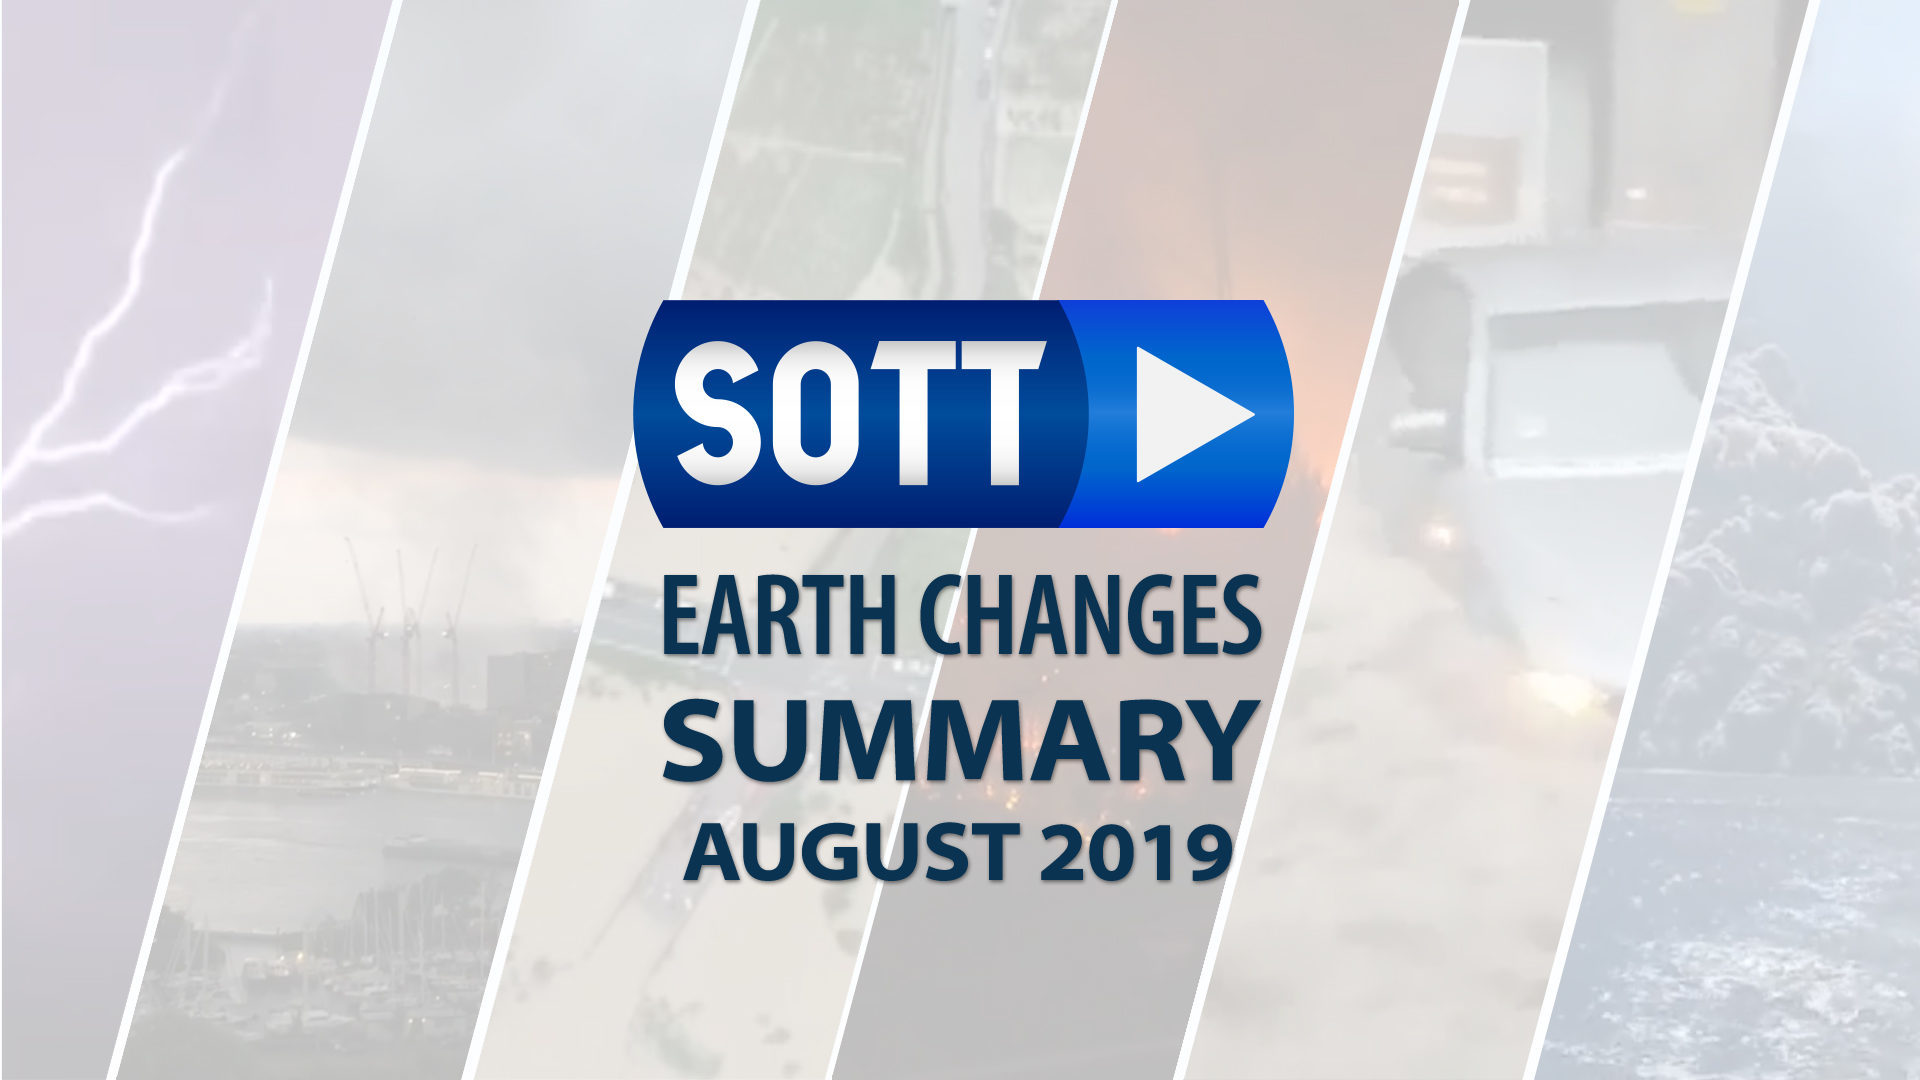 SOTT Earth Changes Summary - August 2019: Extreme Weather